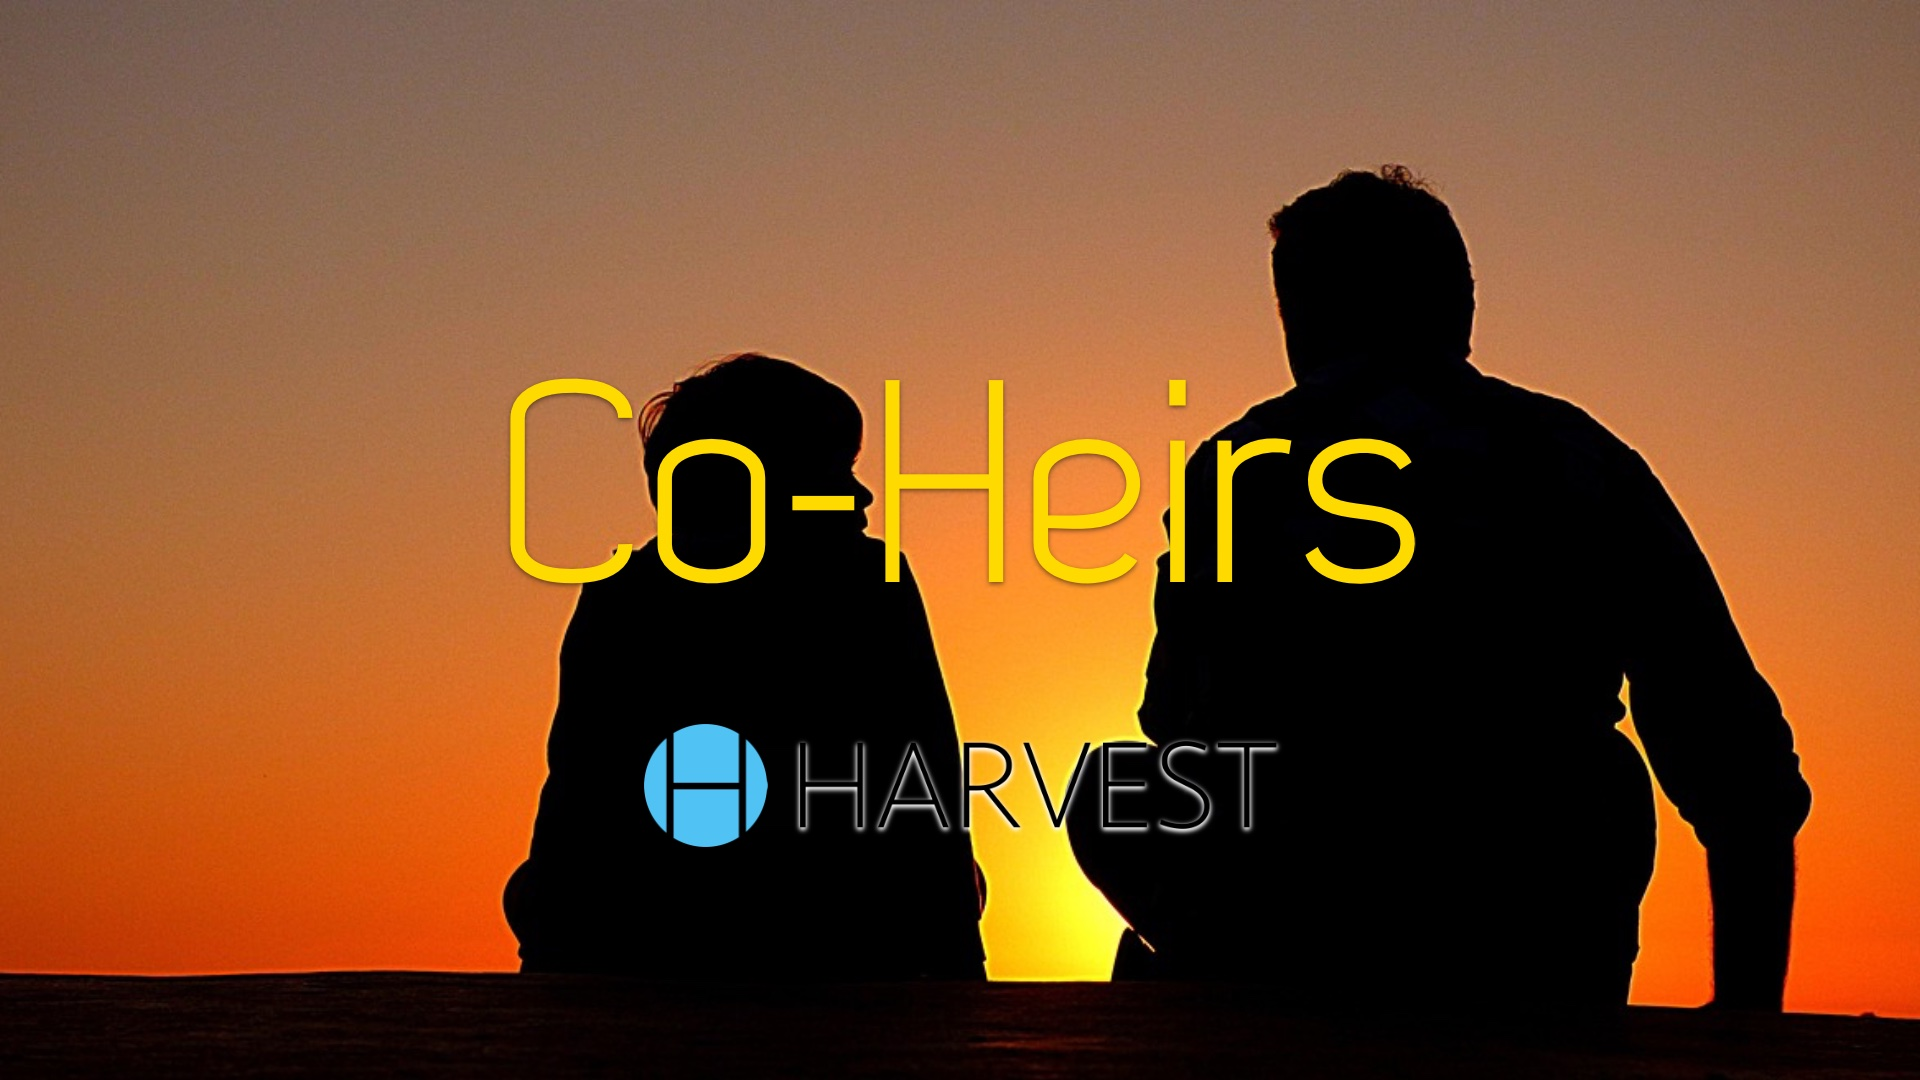 Co-Heirs